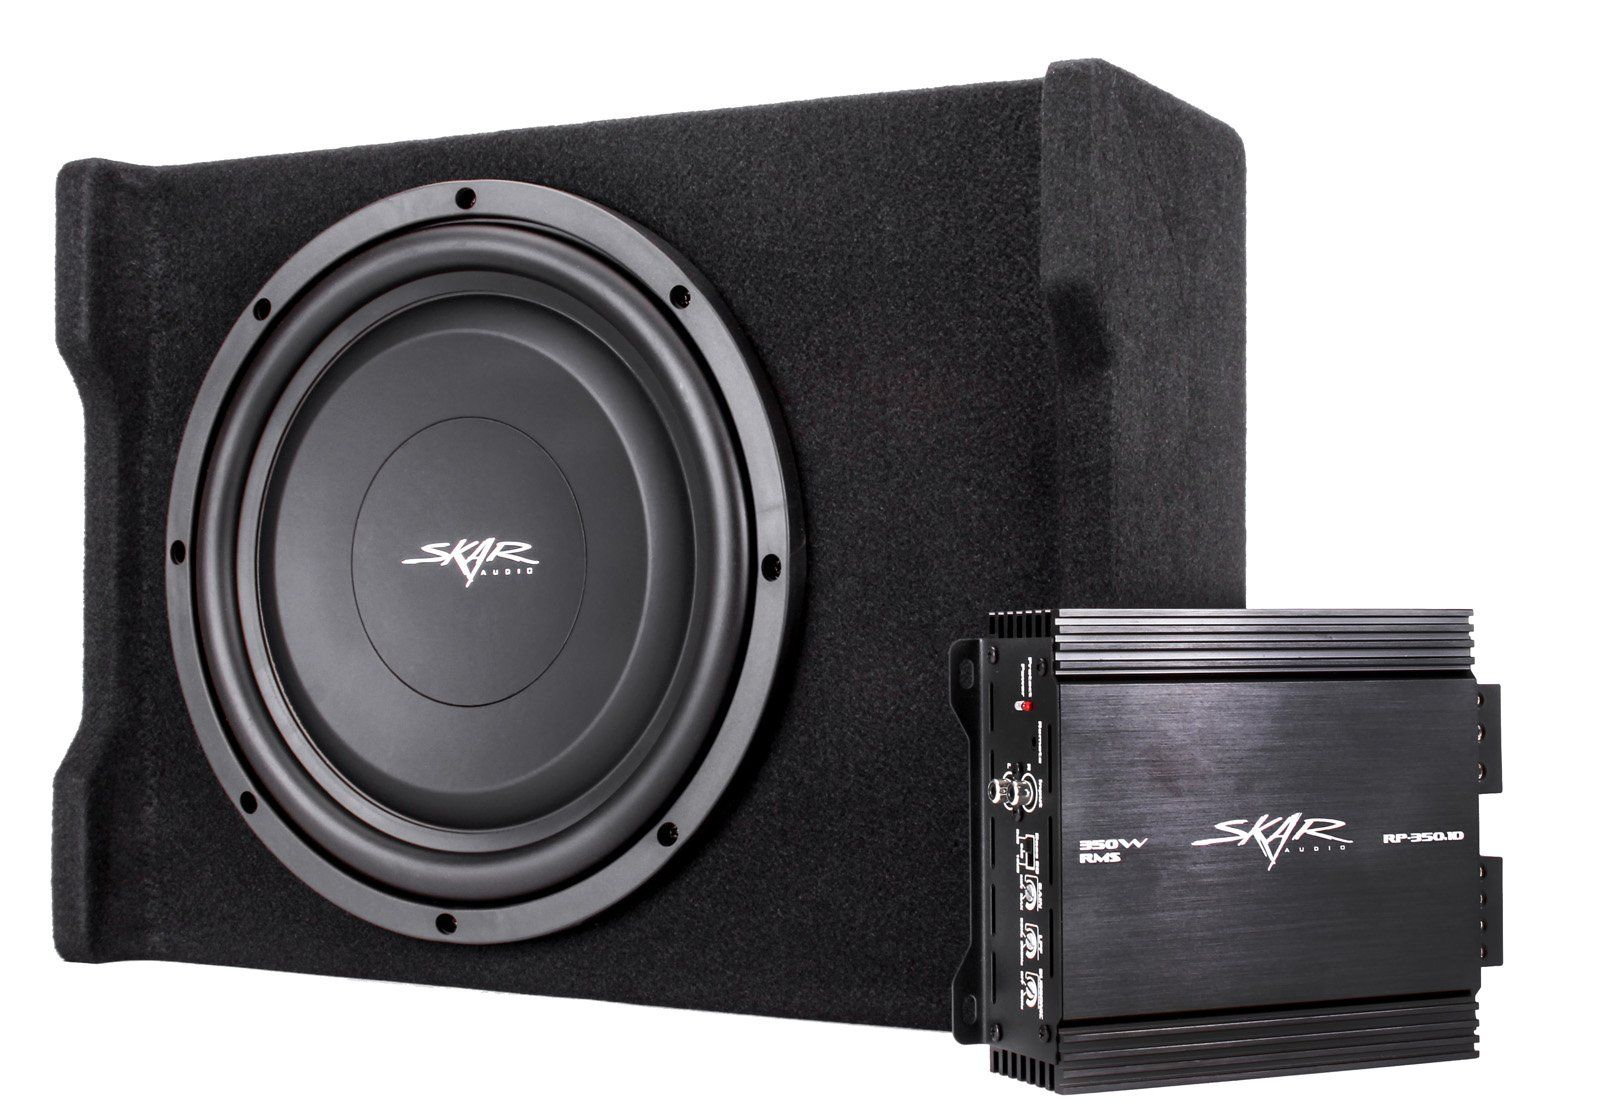 skar audio single watt loaded shallow subwoofer enclosure skar audio single 400 watt loaded shallow subwoofer enclosure bass package amplifier and wiring